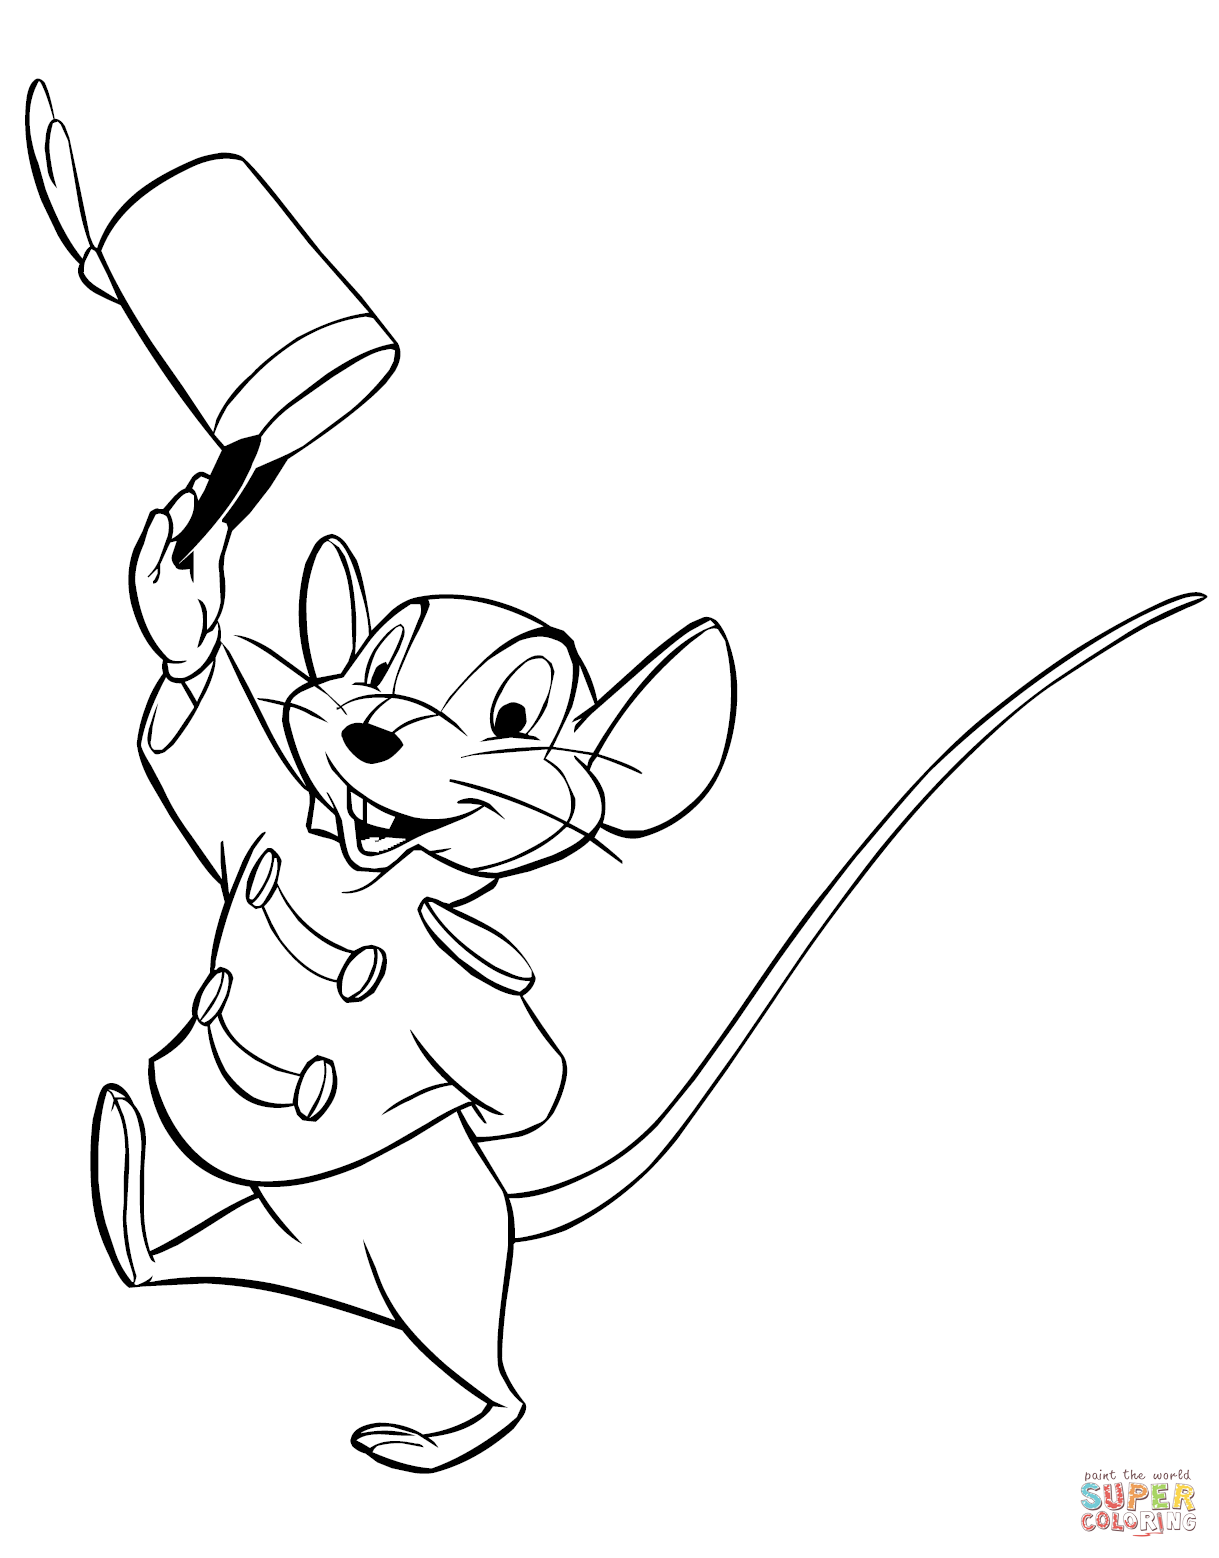 Mouse clipart timothy q Coloring Q Timothy coloring page